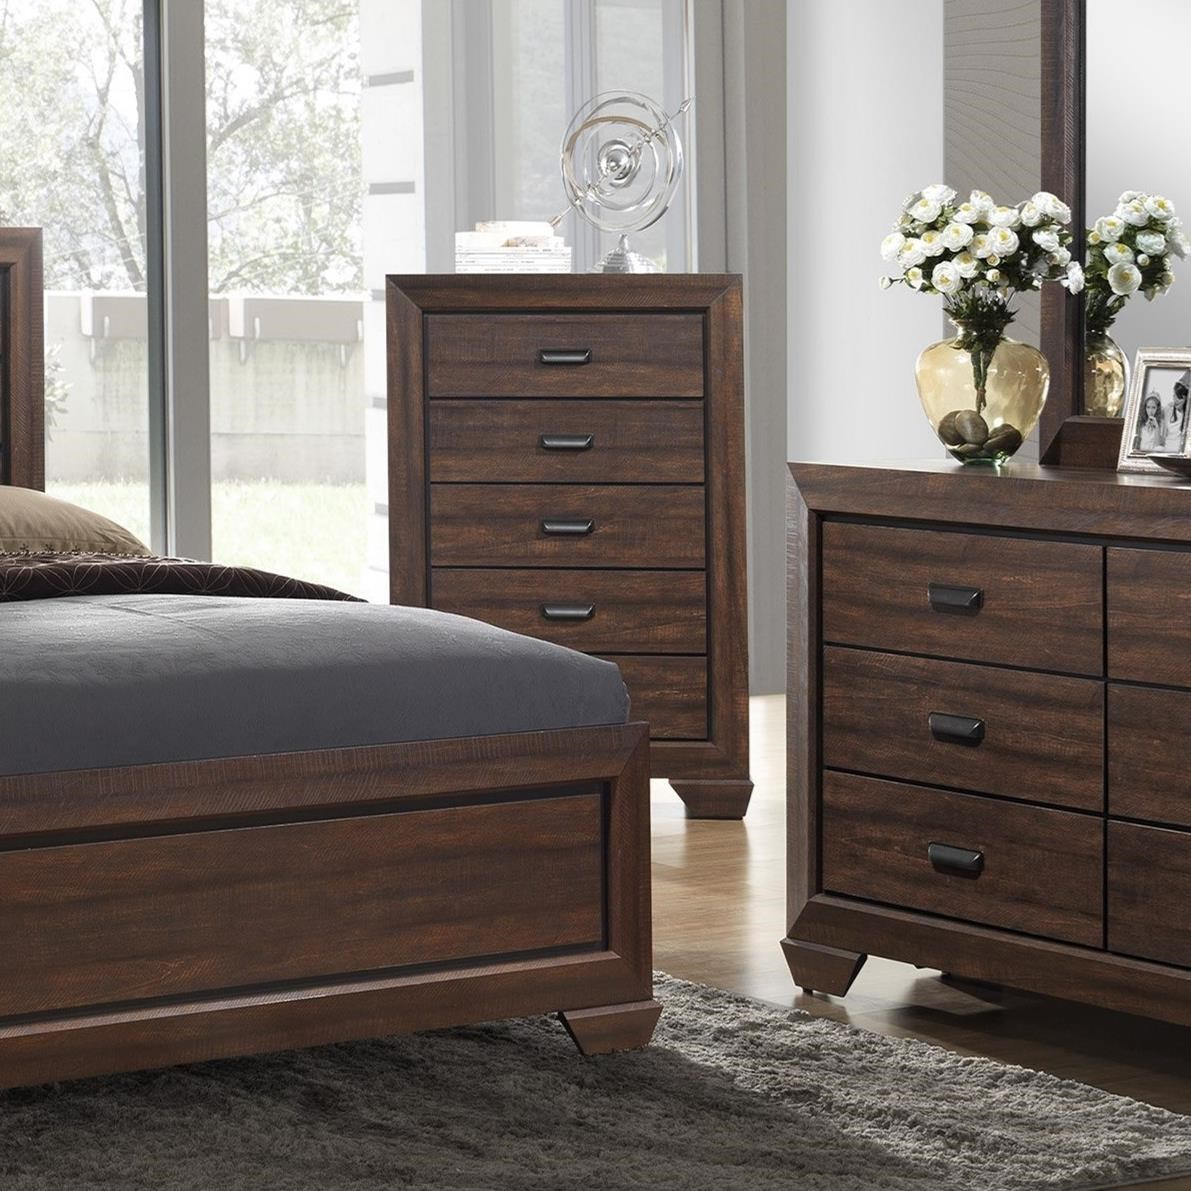 1085 Best Images About Bedroom Furniture On Pinterest: Crown Mark Farrow B5510-4 Transitional Chest Of Drawers